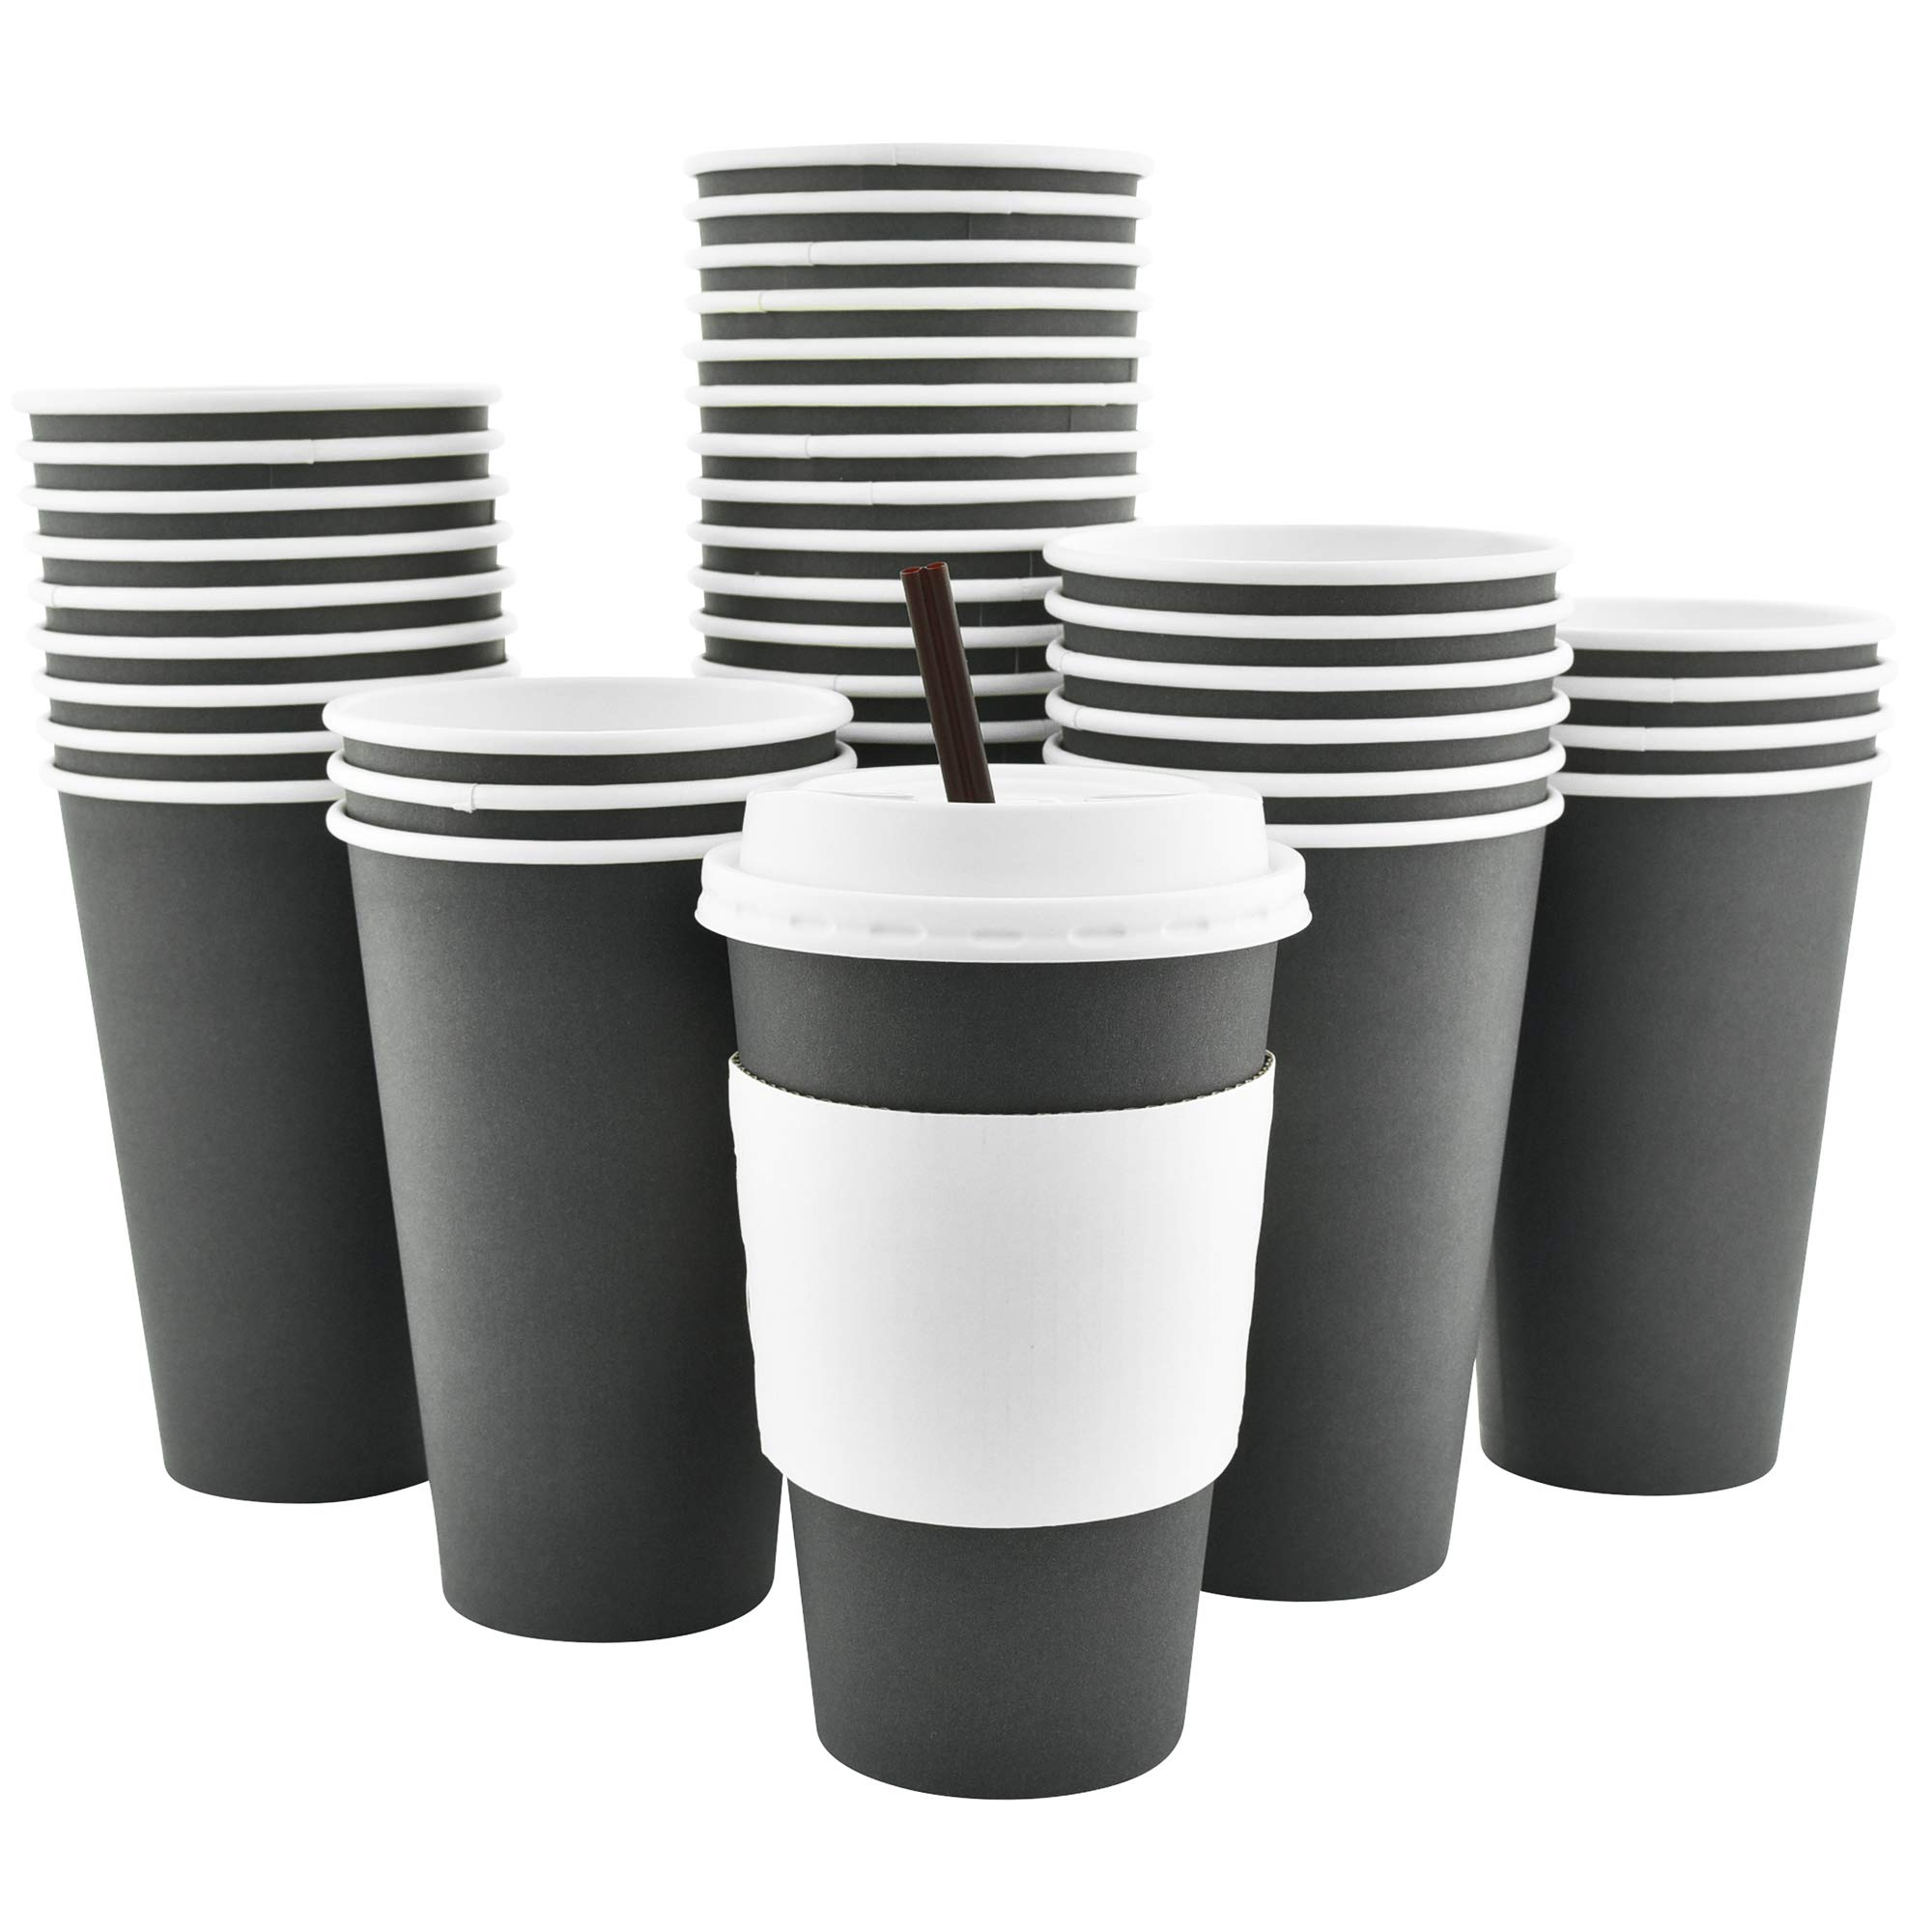 100 Pack - 16 Oz [12 Oz] [4 Colors] Disposable Hot Paper Coffee Cups, Lids, Sleeves, Stirring Straws - Slate Gray